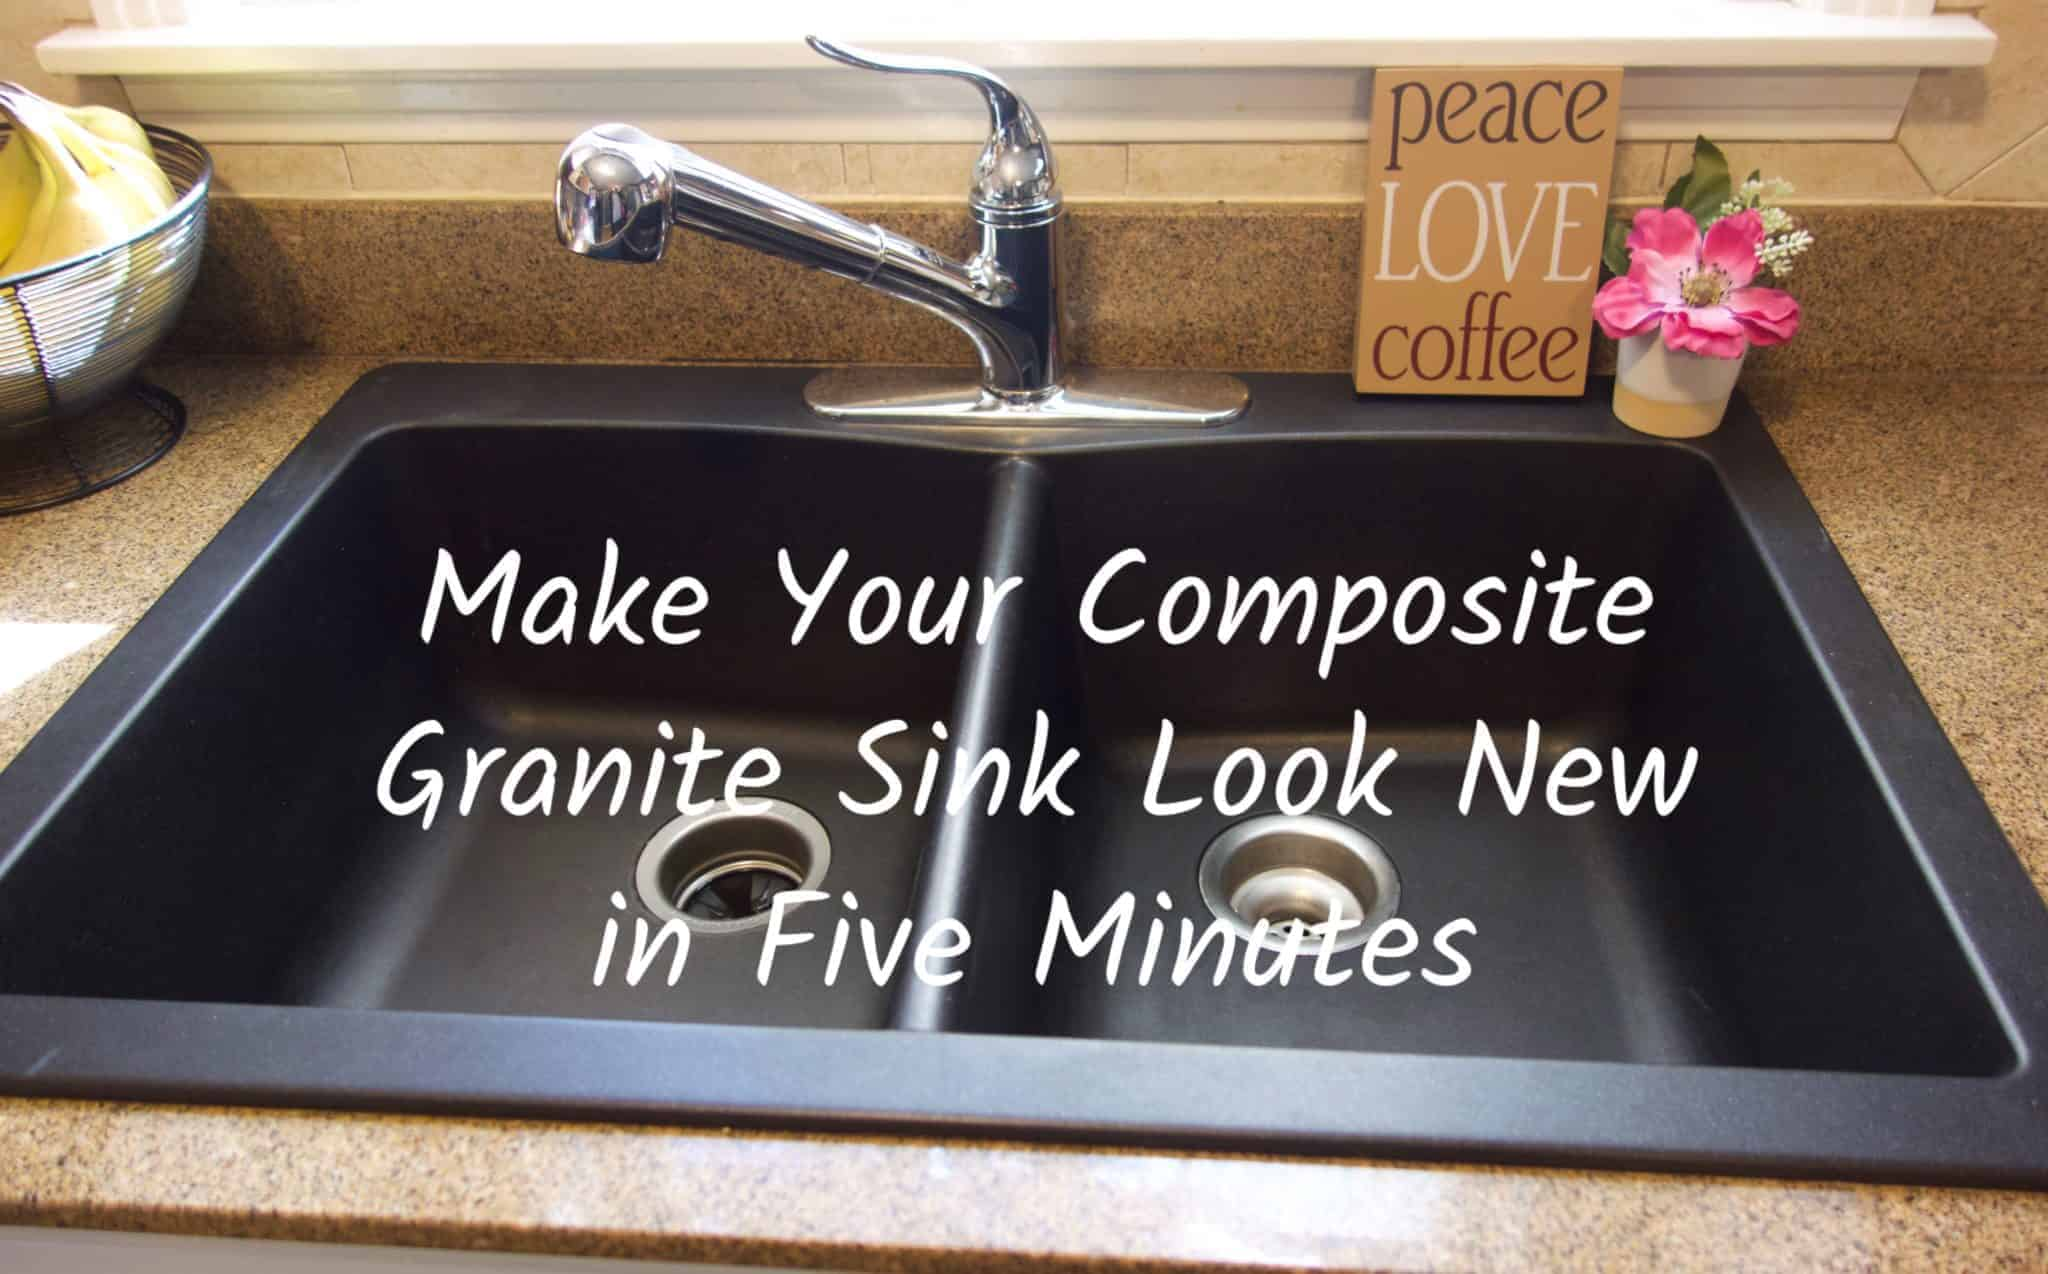 Make your composite granite sink look new in just five minutes!